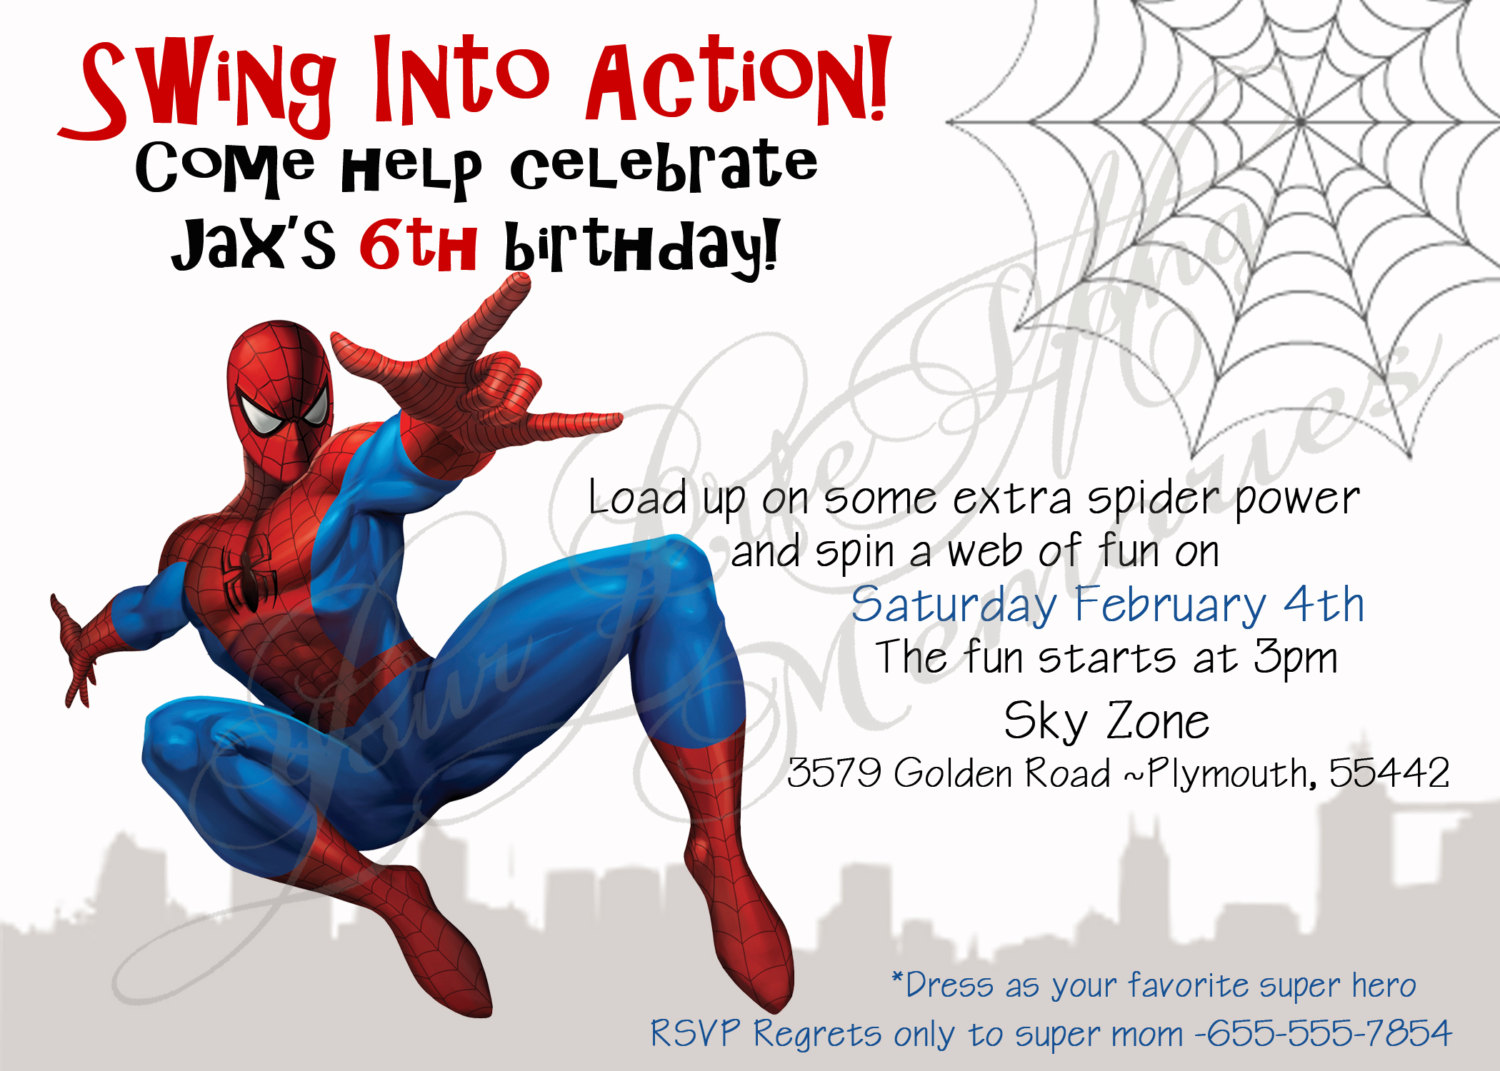 free printable spiderman birthday invitation templates ; elegant_free_spiderman_birthday_invitations_templates_bonfire_with_ilustration_red_hd_size_amazing_idea_design_4_2